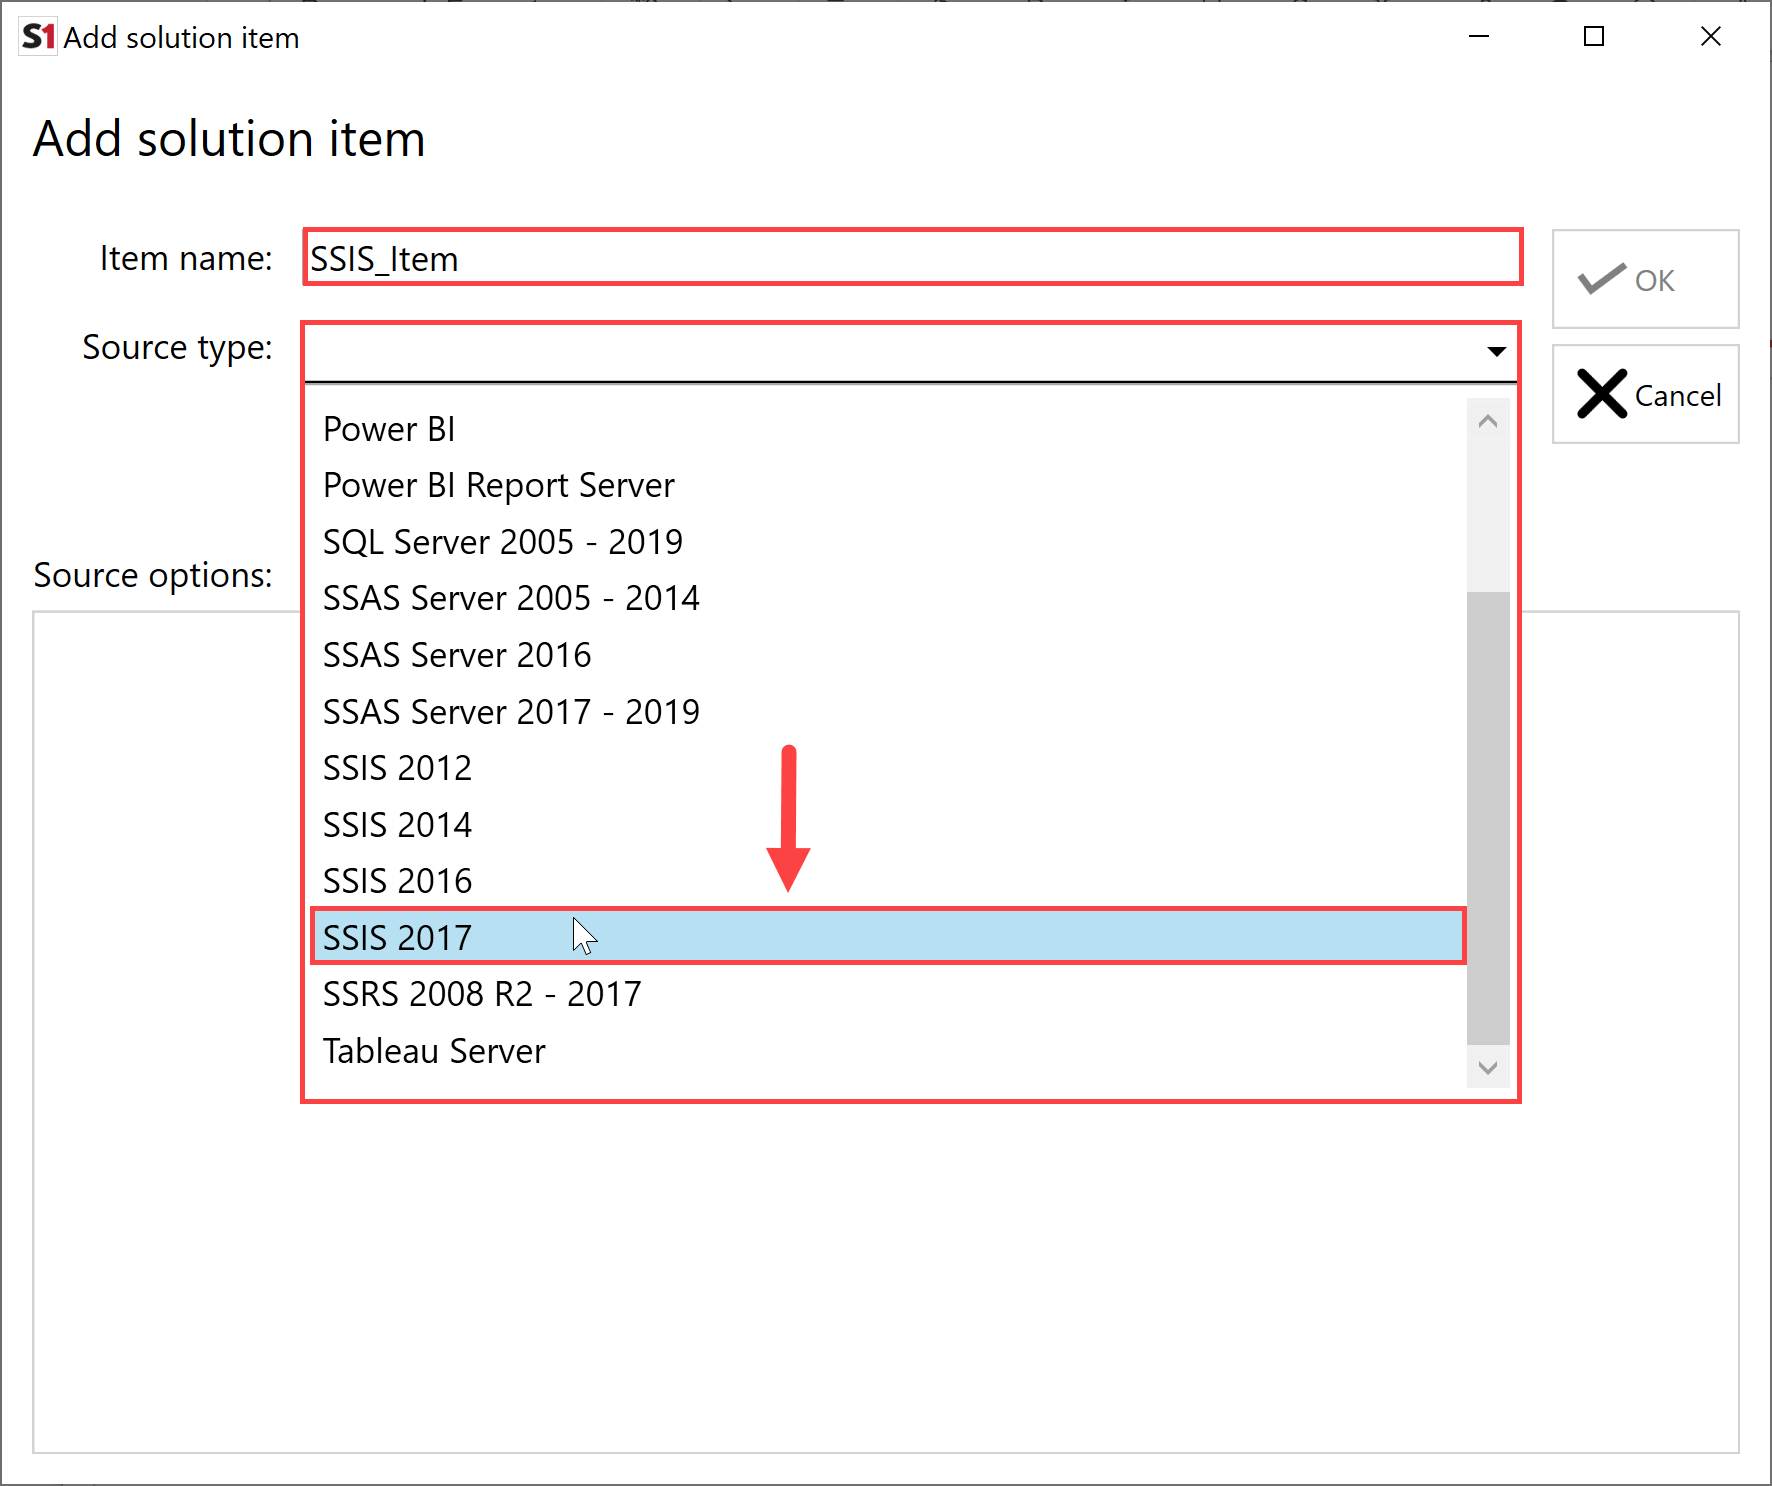 SentryOne Document Add Solution Item SSIS 2017